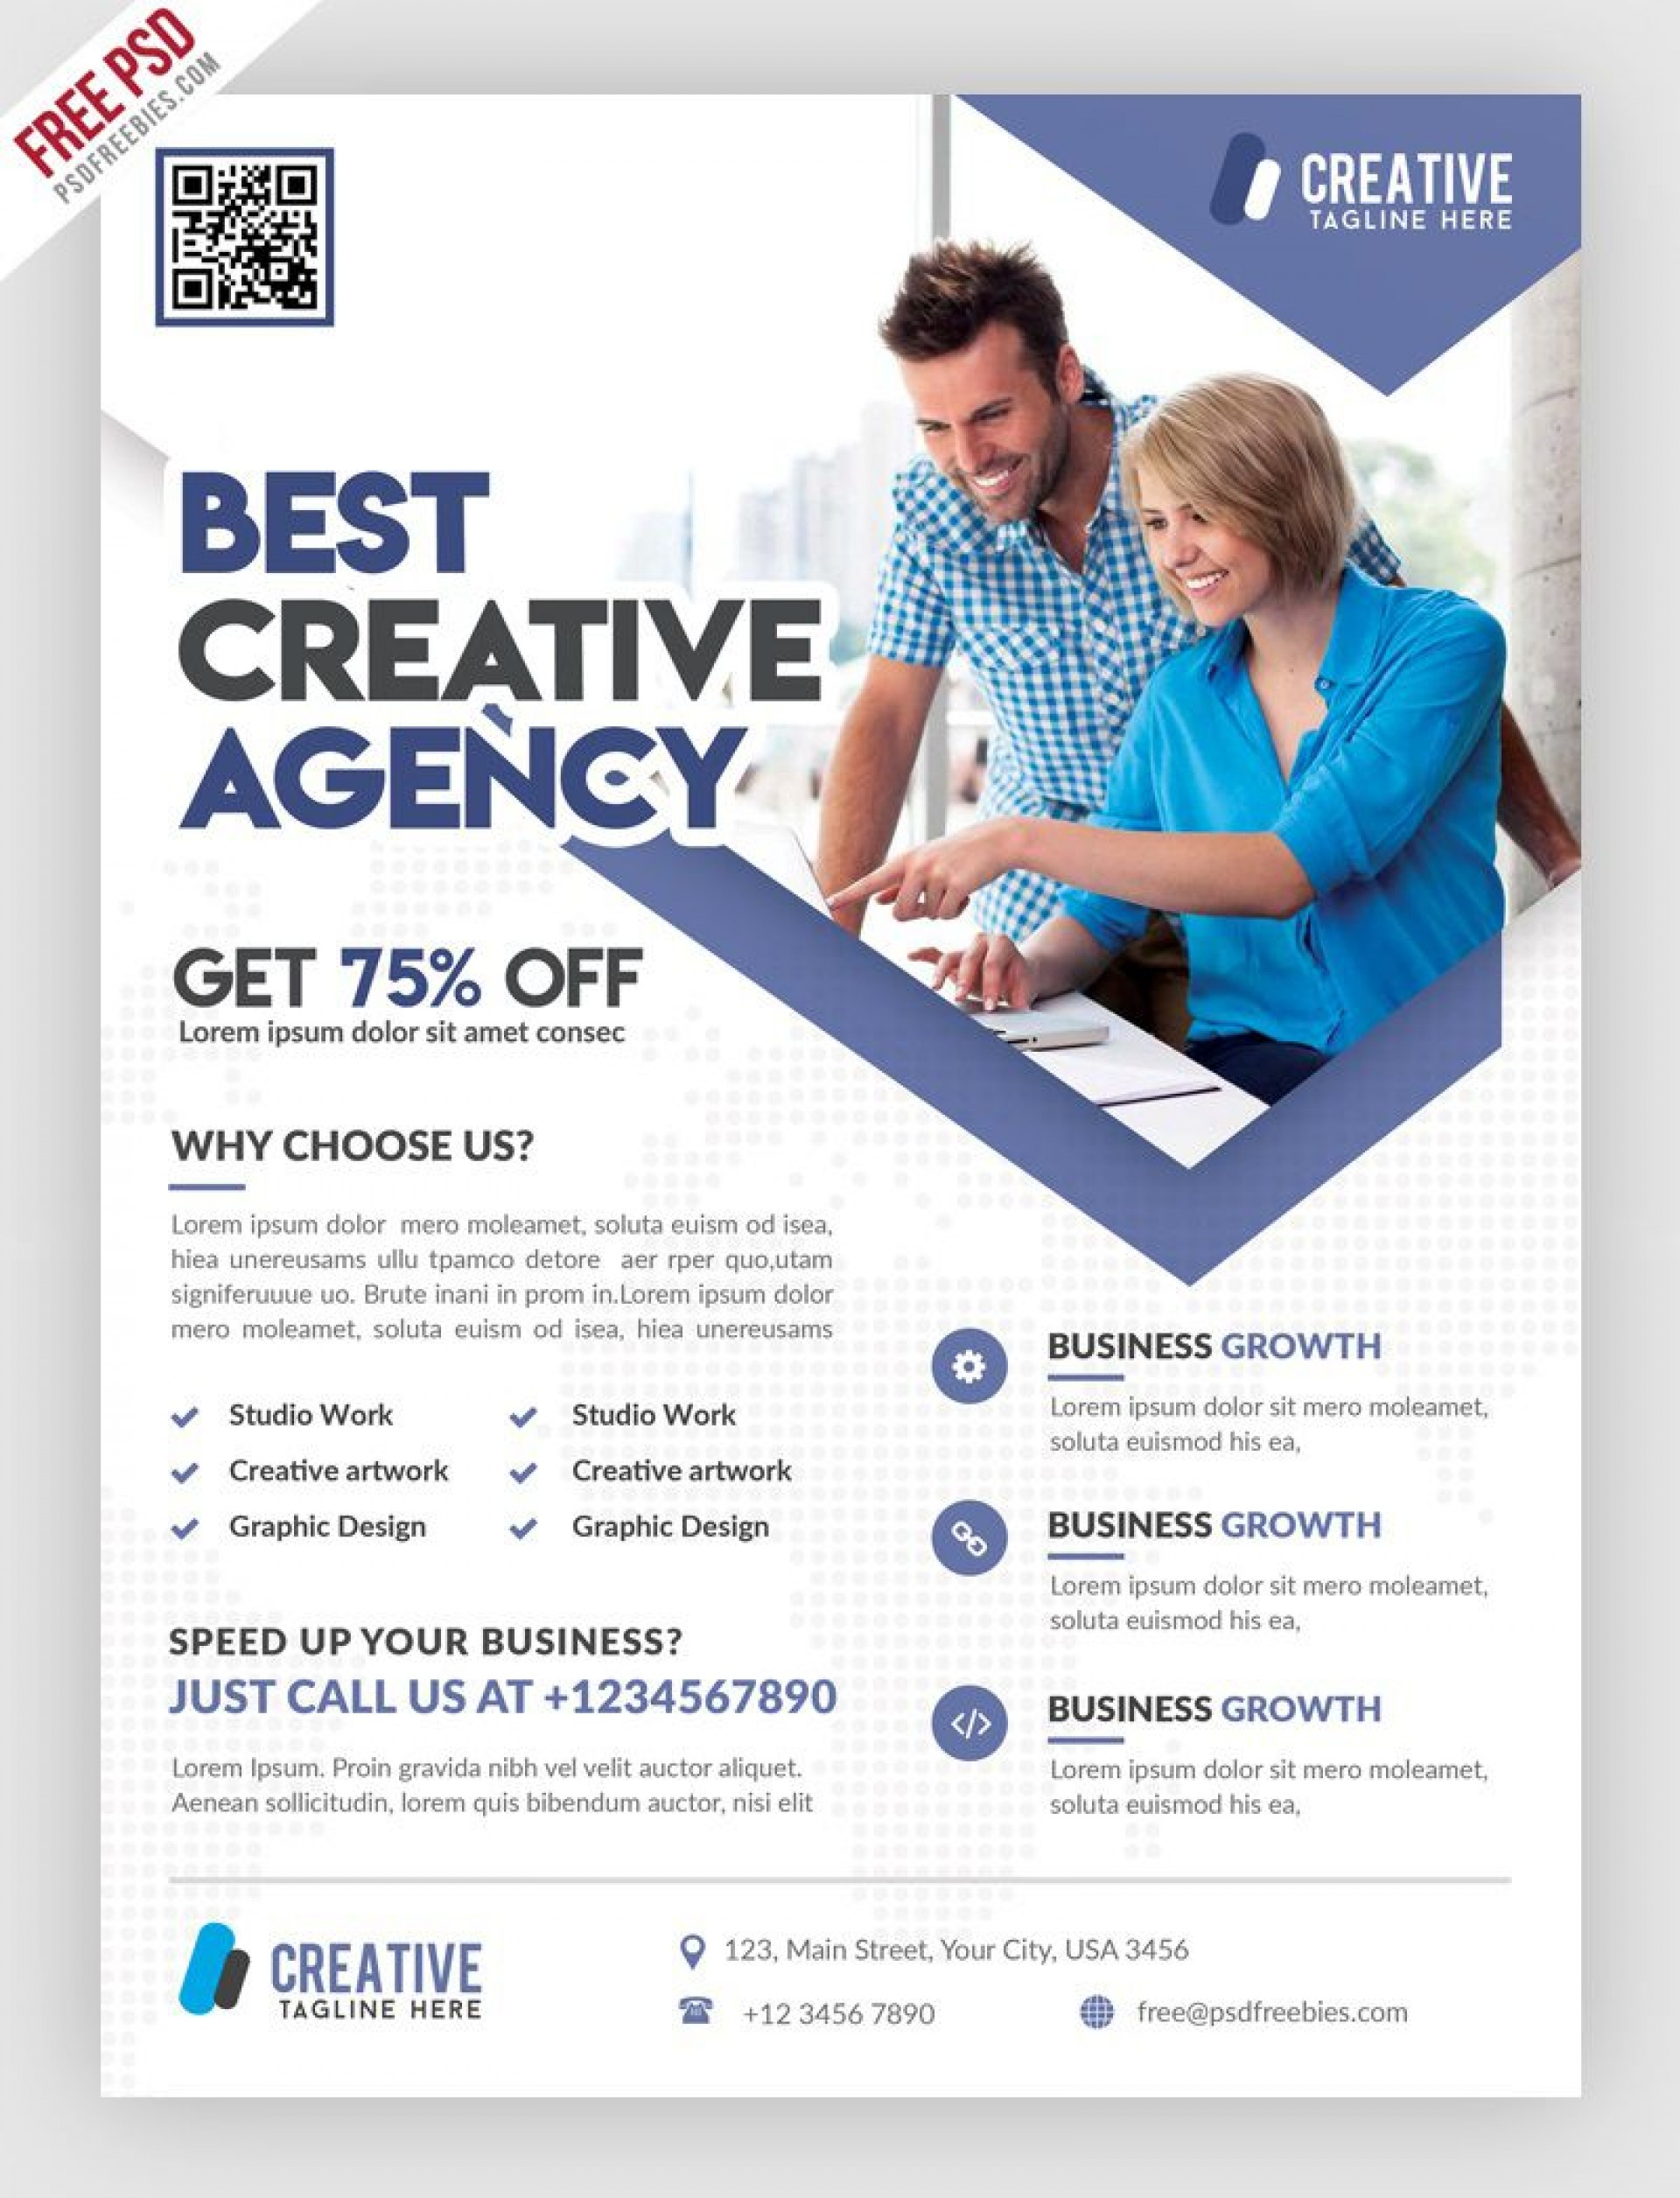 004 Staggering Free Psd Busines Brochure Template High Resolution  Templates Flyer 2018 Corporate1920